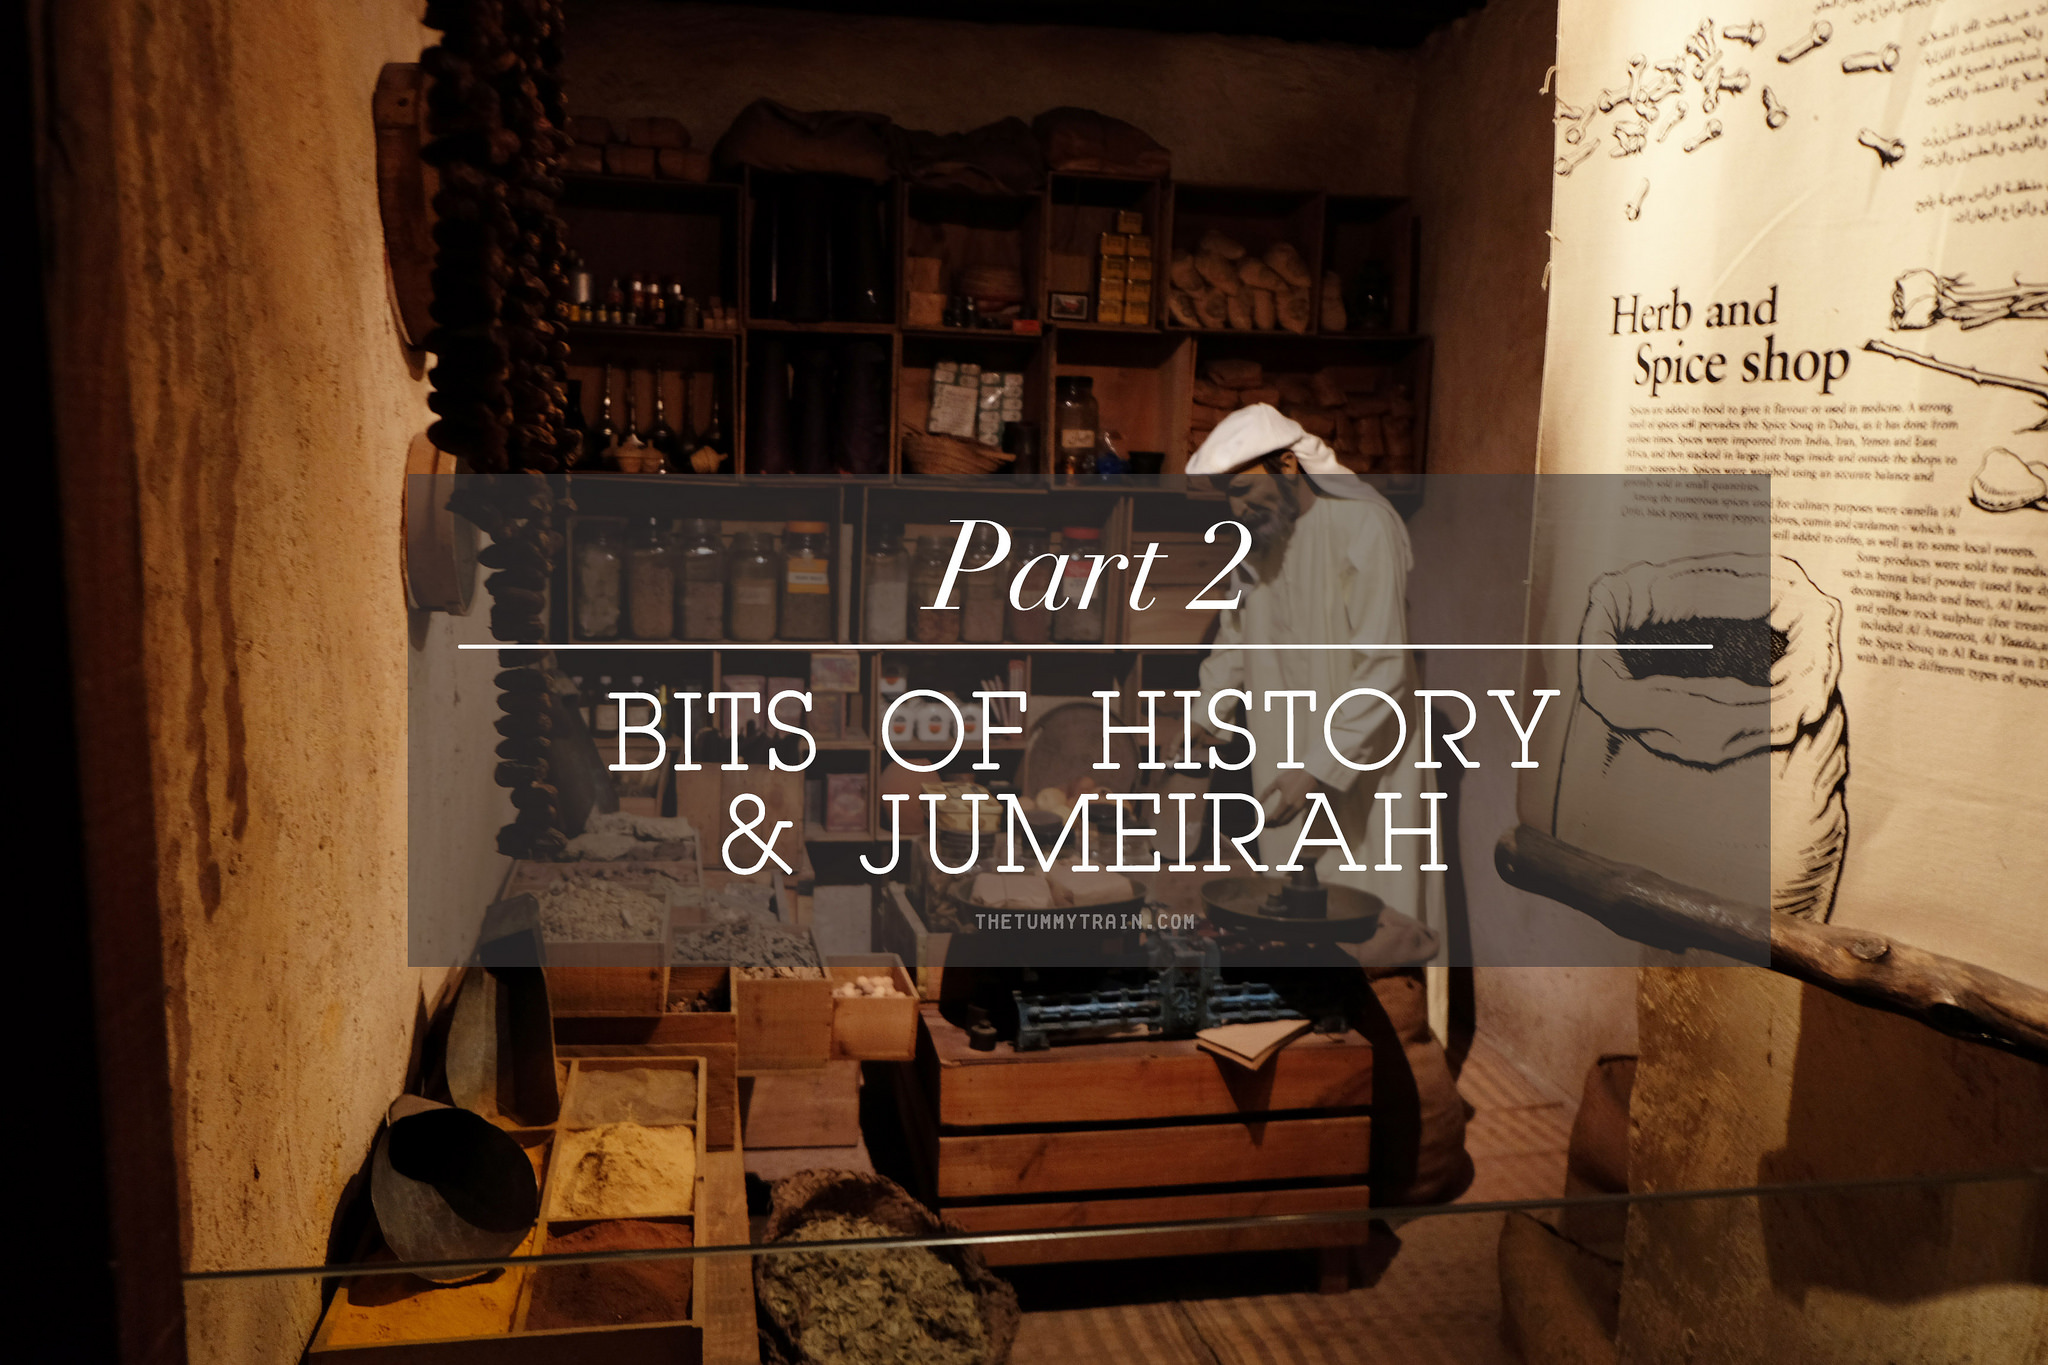 16670399272 76453ea8e7 b 1 - {Dubai 2014} A bit of history + views around Jumeirah